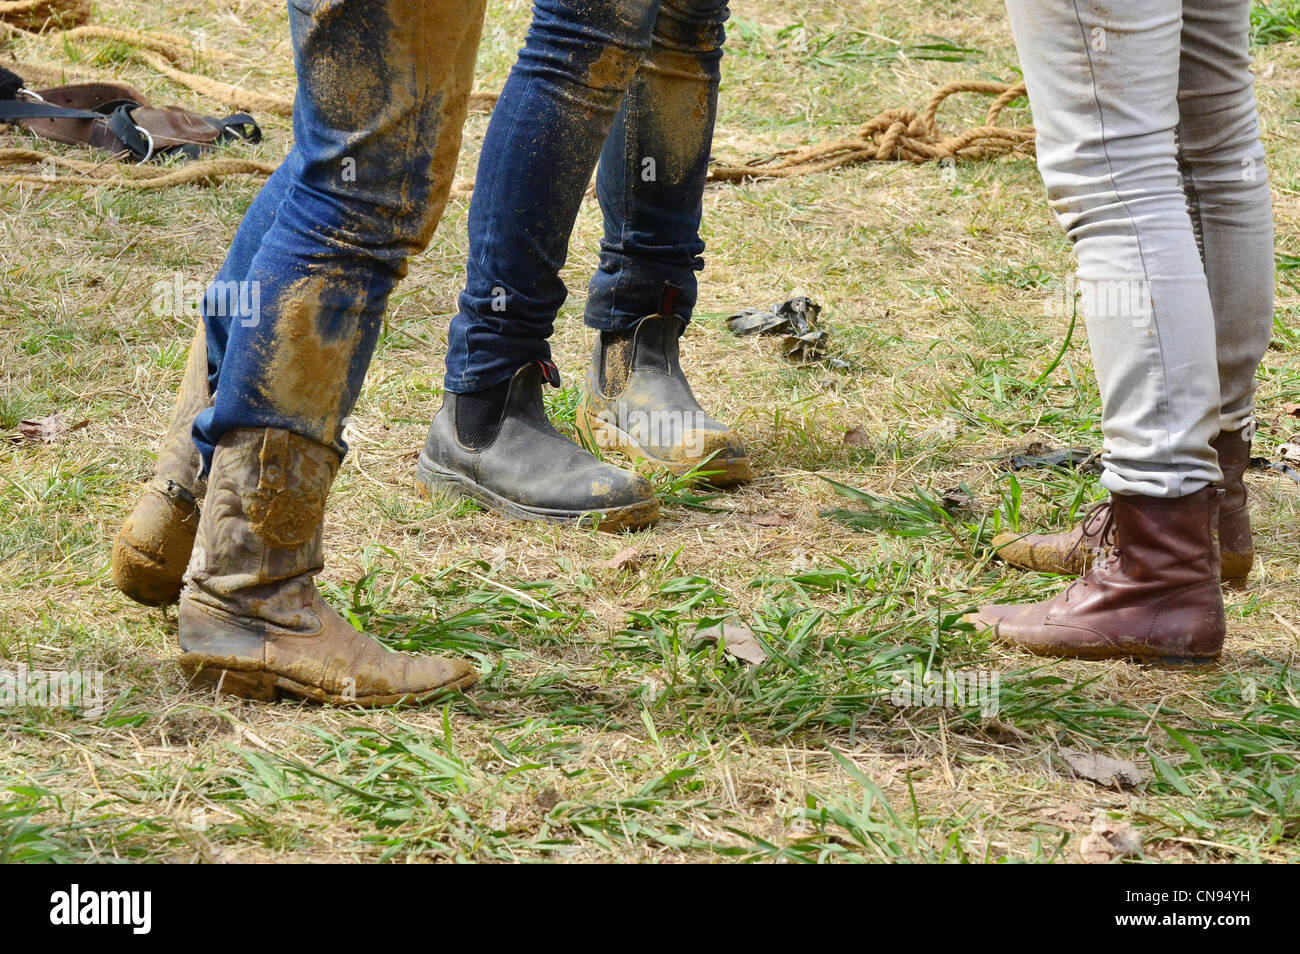 Cowgirls wearing muddy boots in a rodeo show stock photo for Dirty foot mud ranch